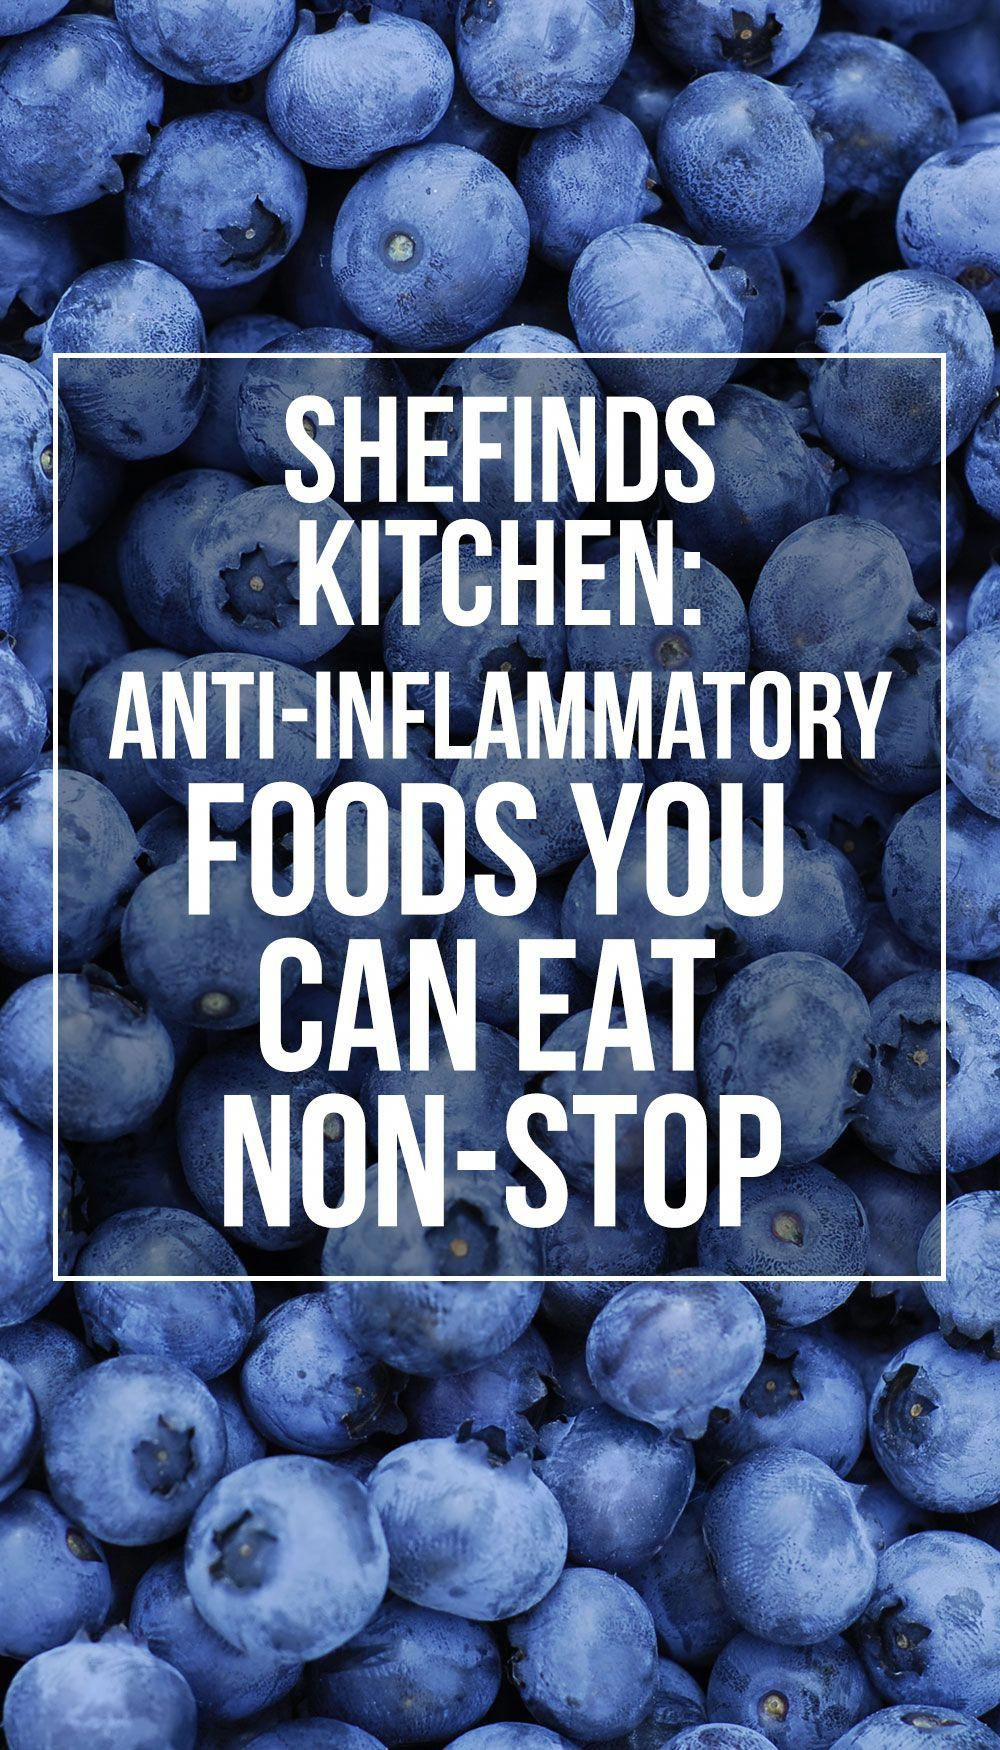 6 Anti-Inflammatory Foods You Can Eat Non-Stop And Still Lose Weight By Summer, According To Nutriti...